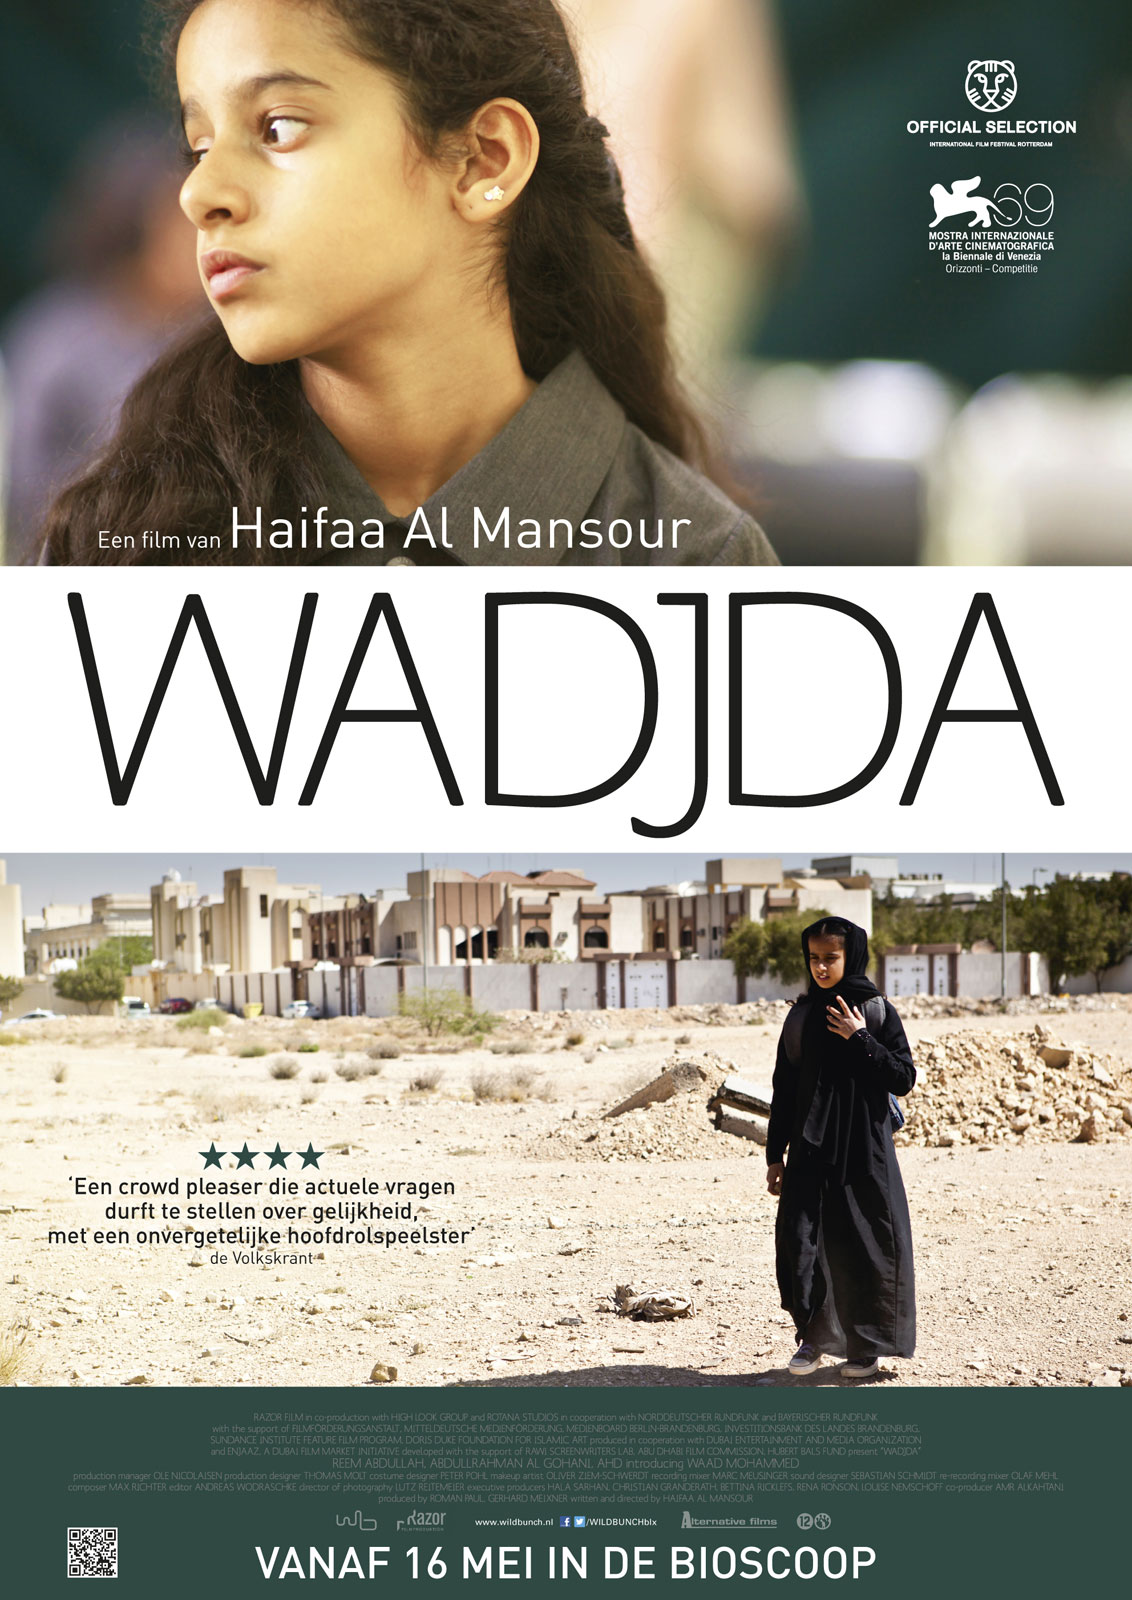 Wadjda: The Film You've got to See, By The Director Who's Making History